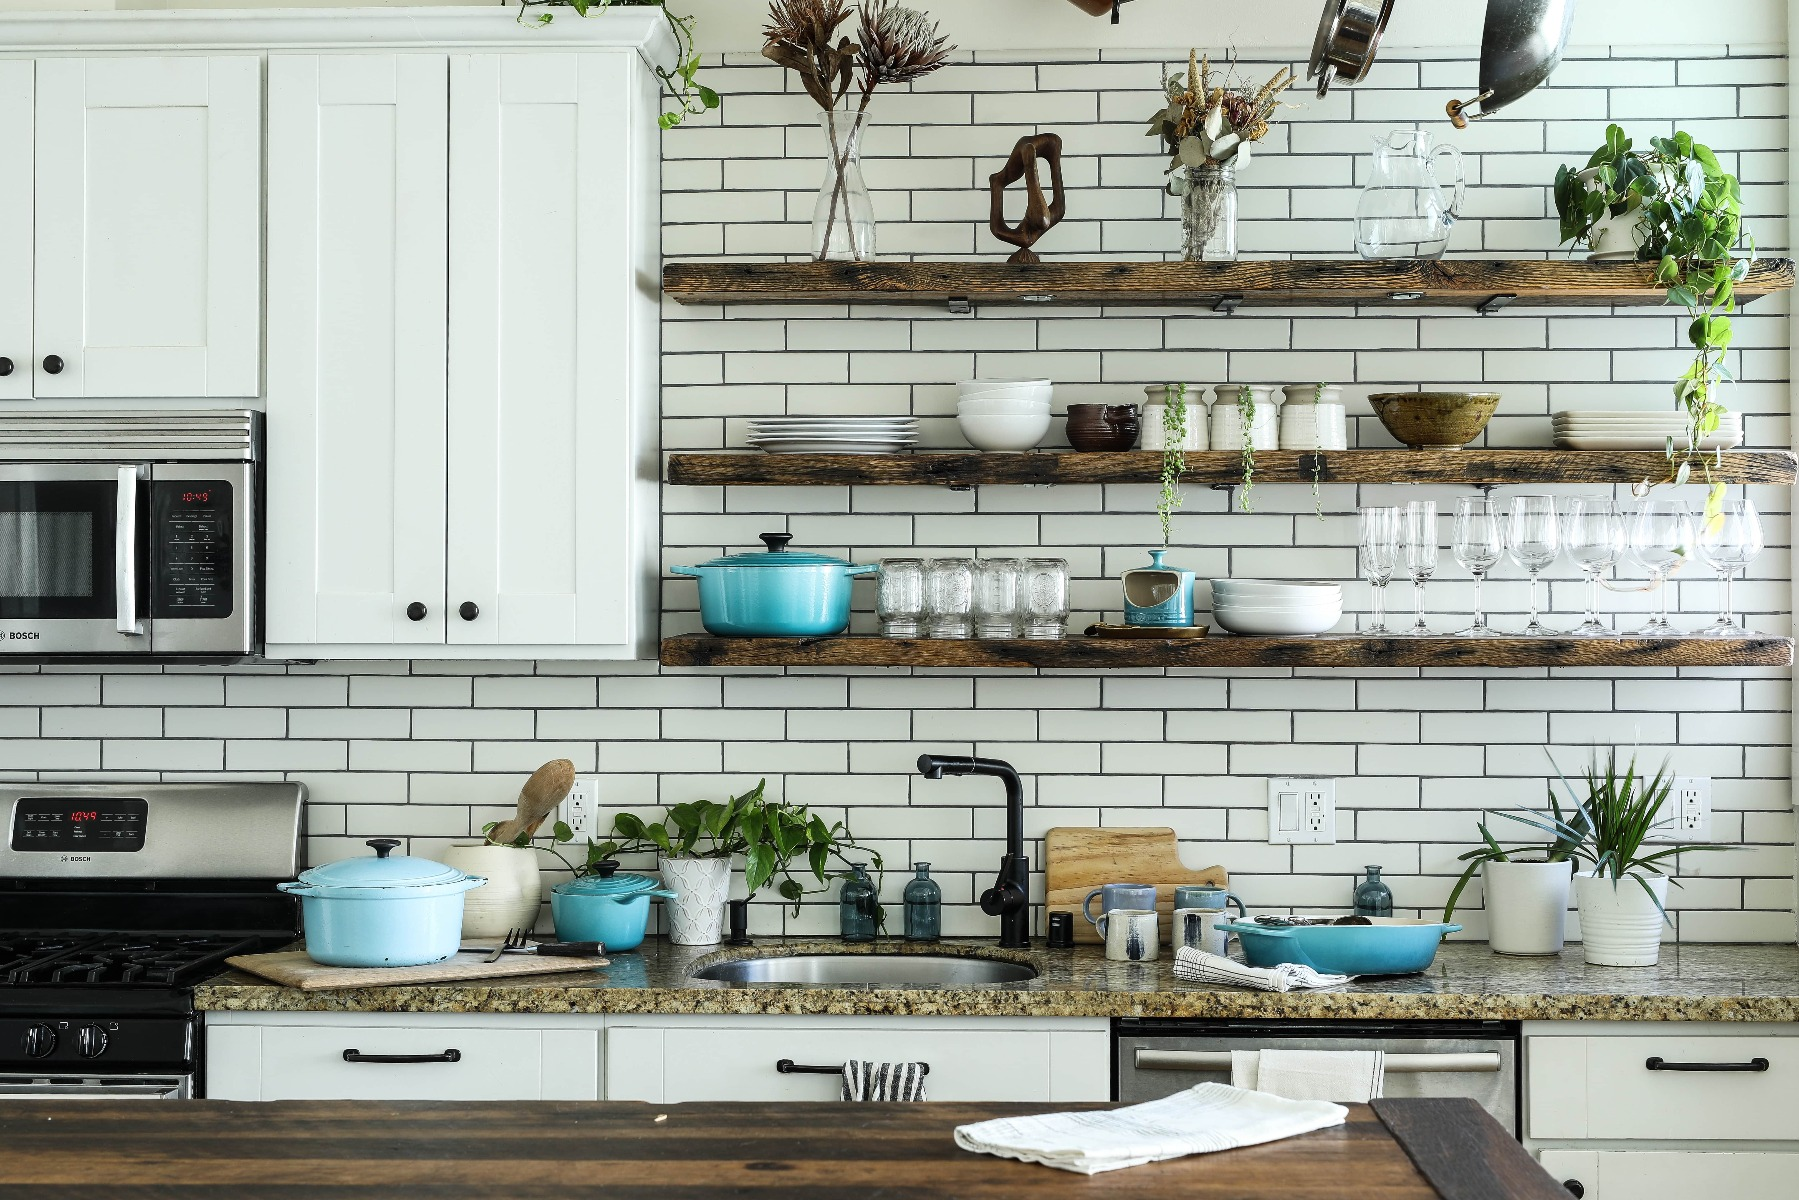 Kitchen Accessories Trend